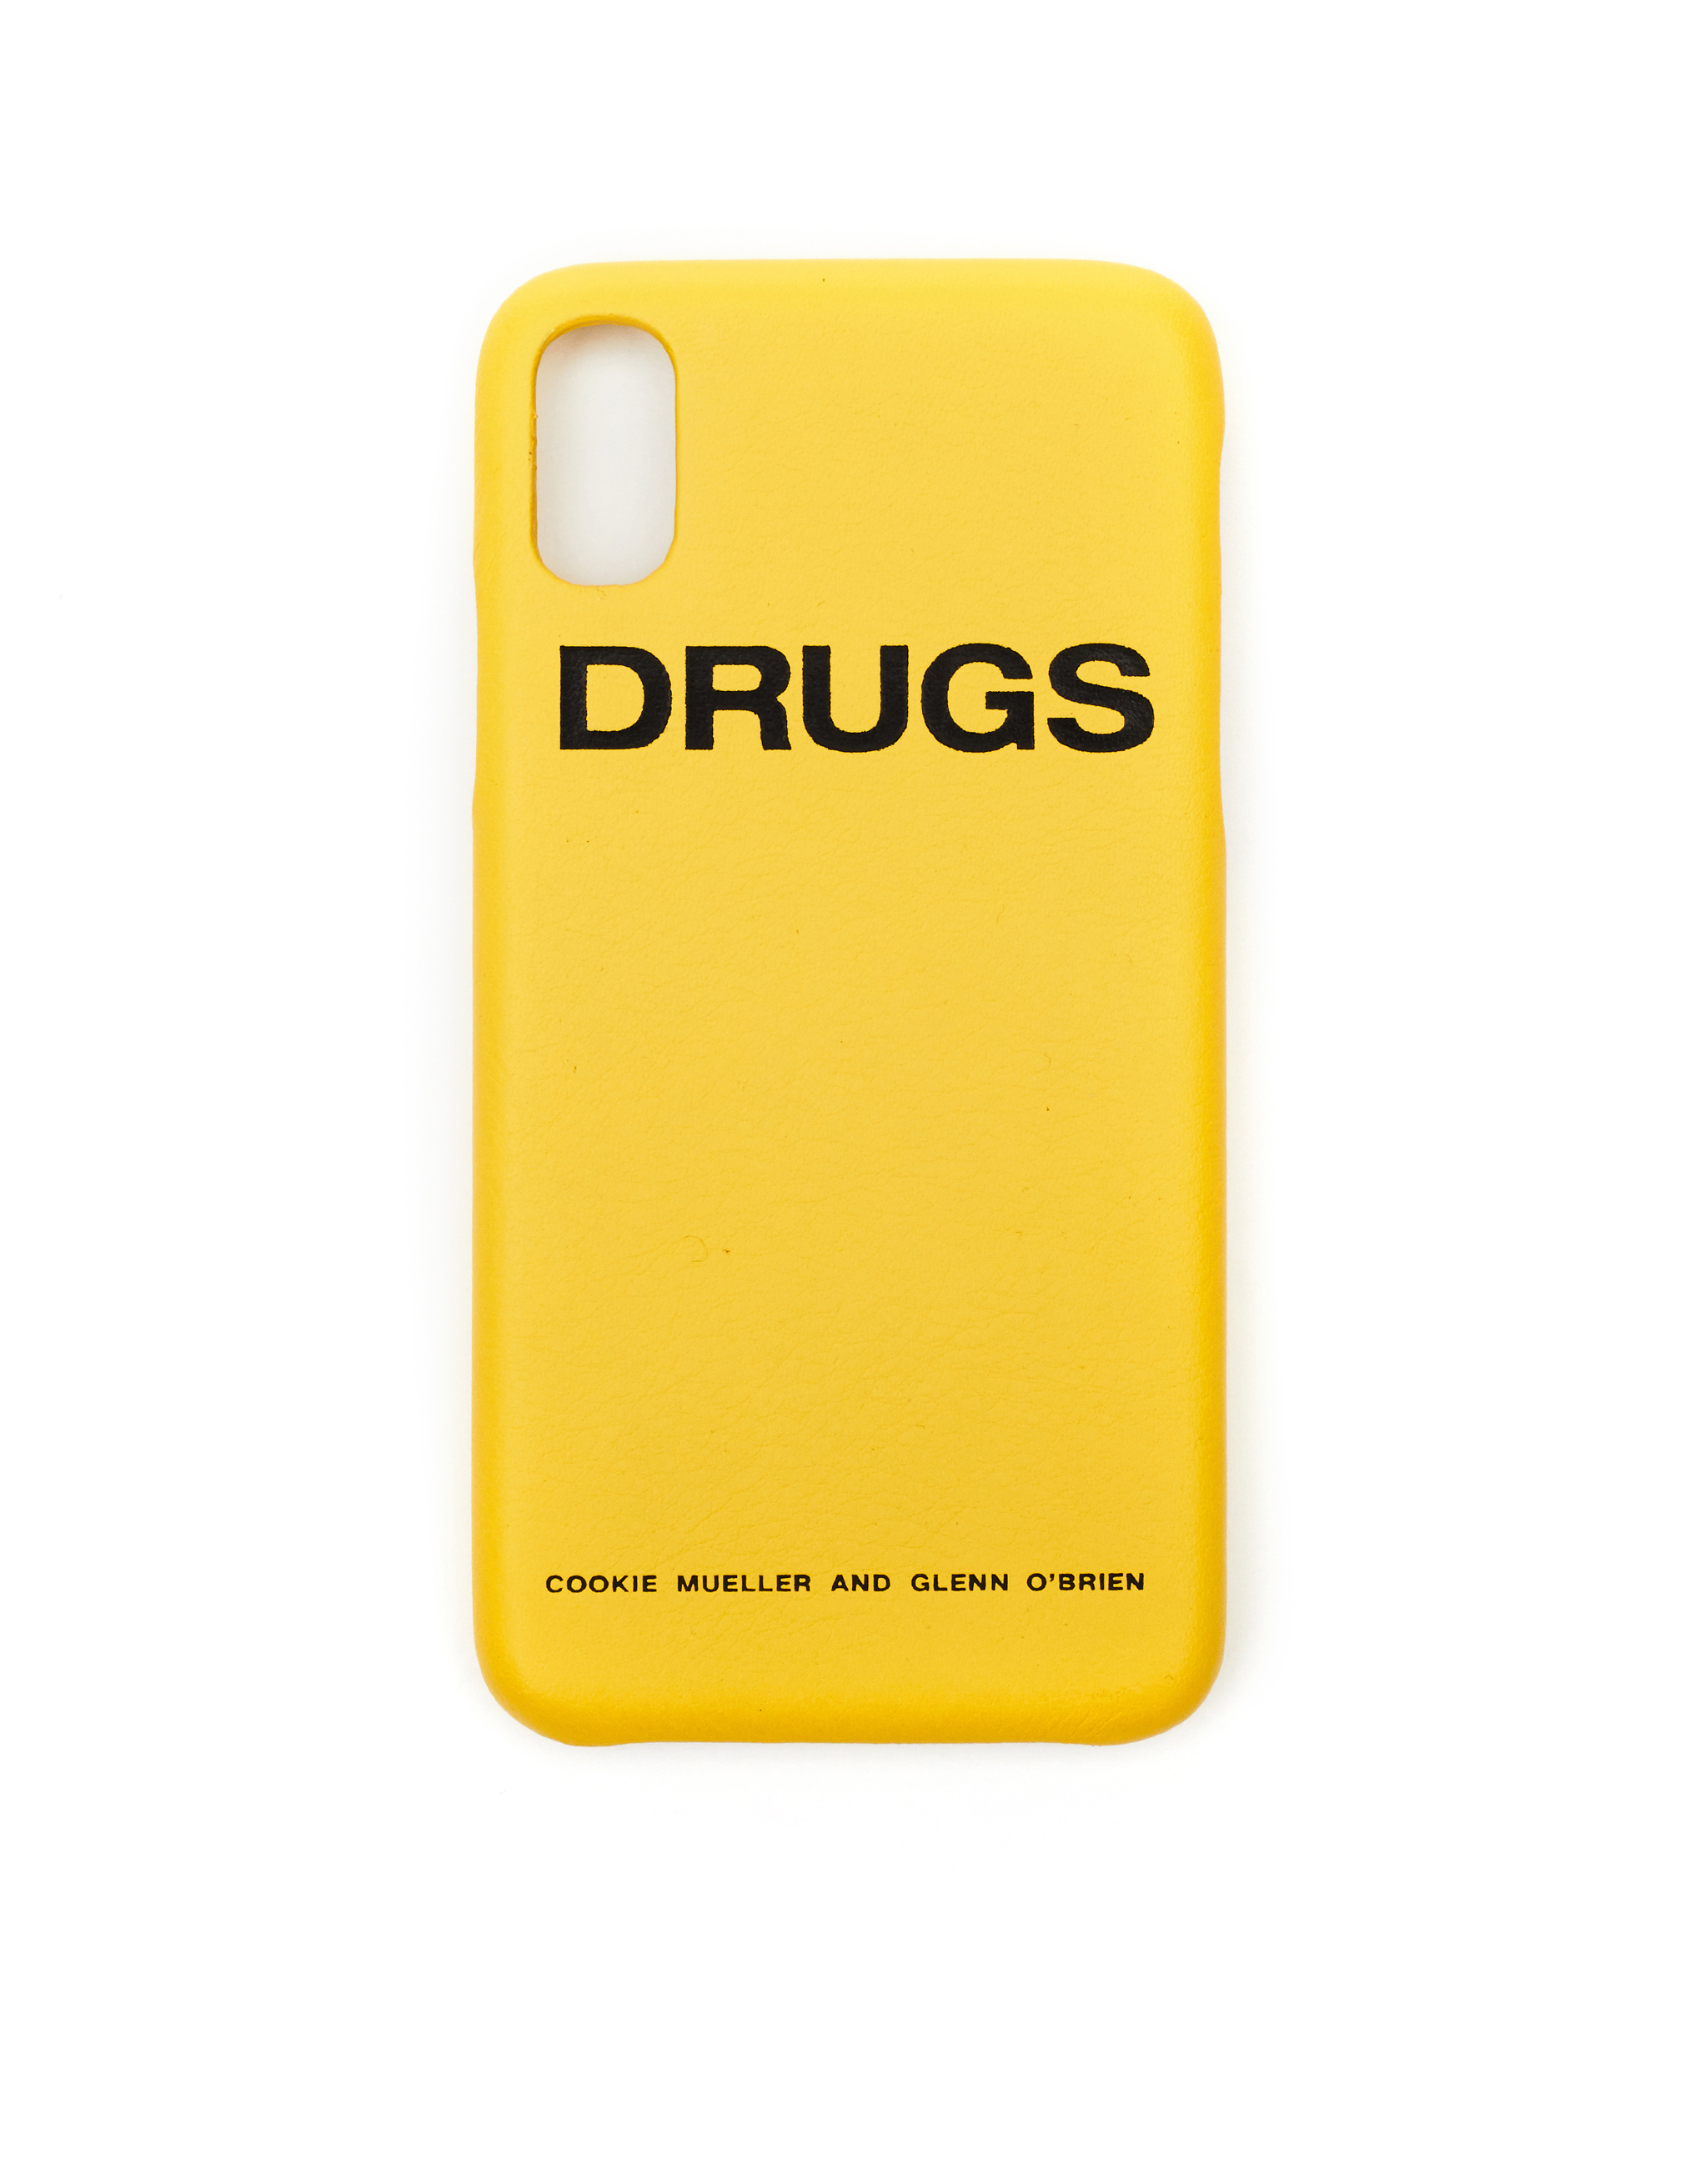 buy online a164b 3a9a6 Raf Simons Drugs iPhone X Case - Yellow